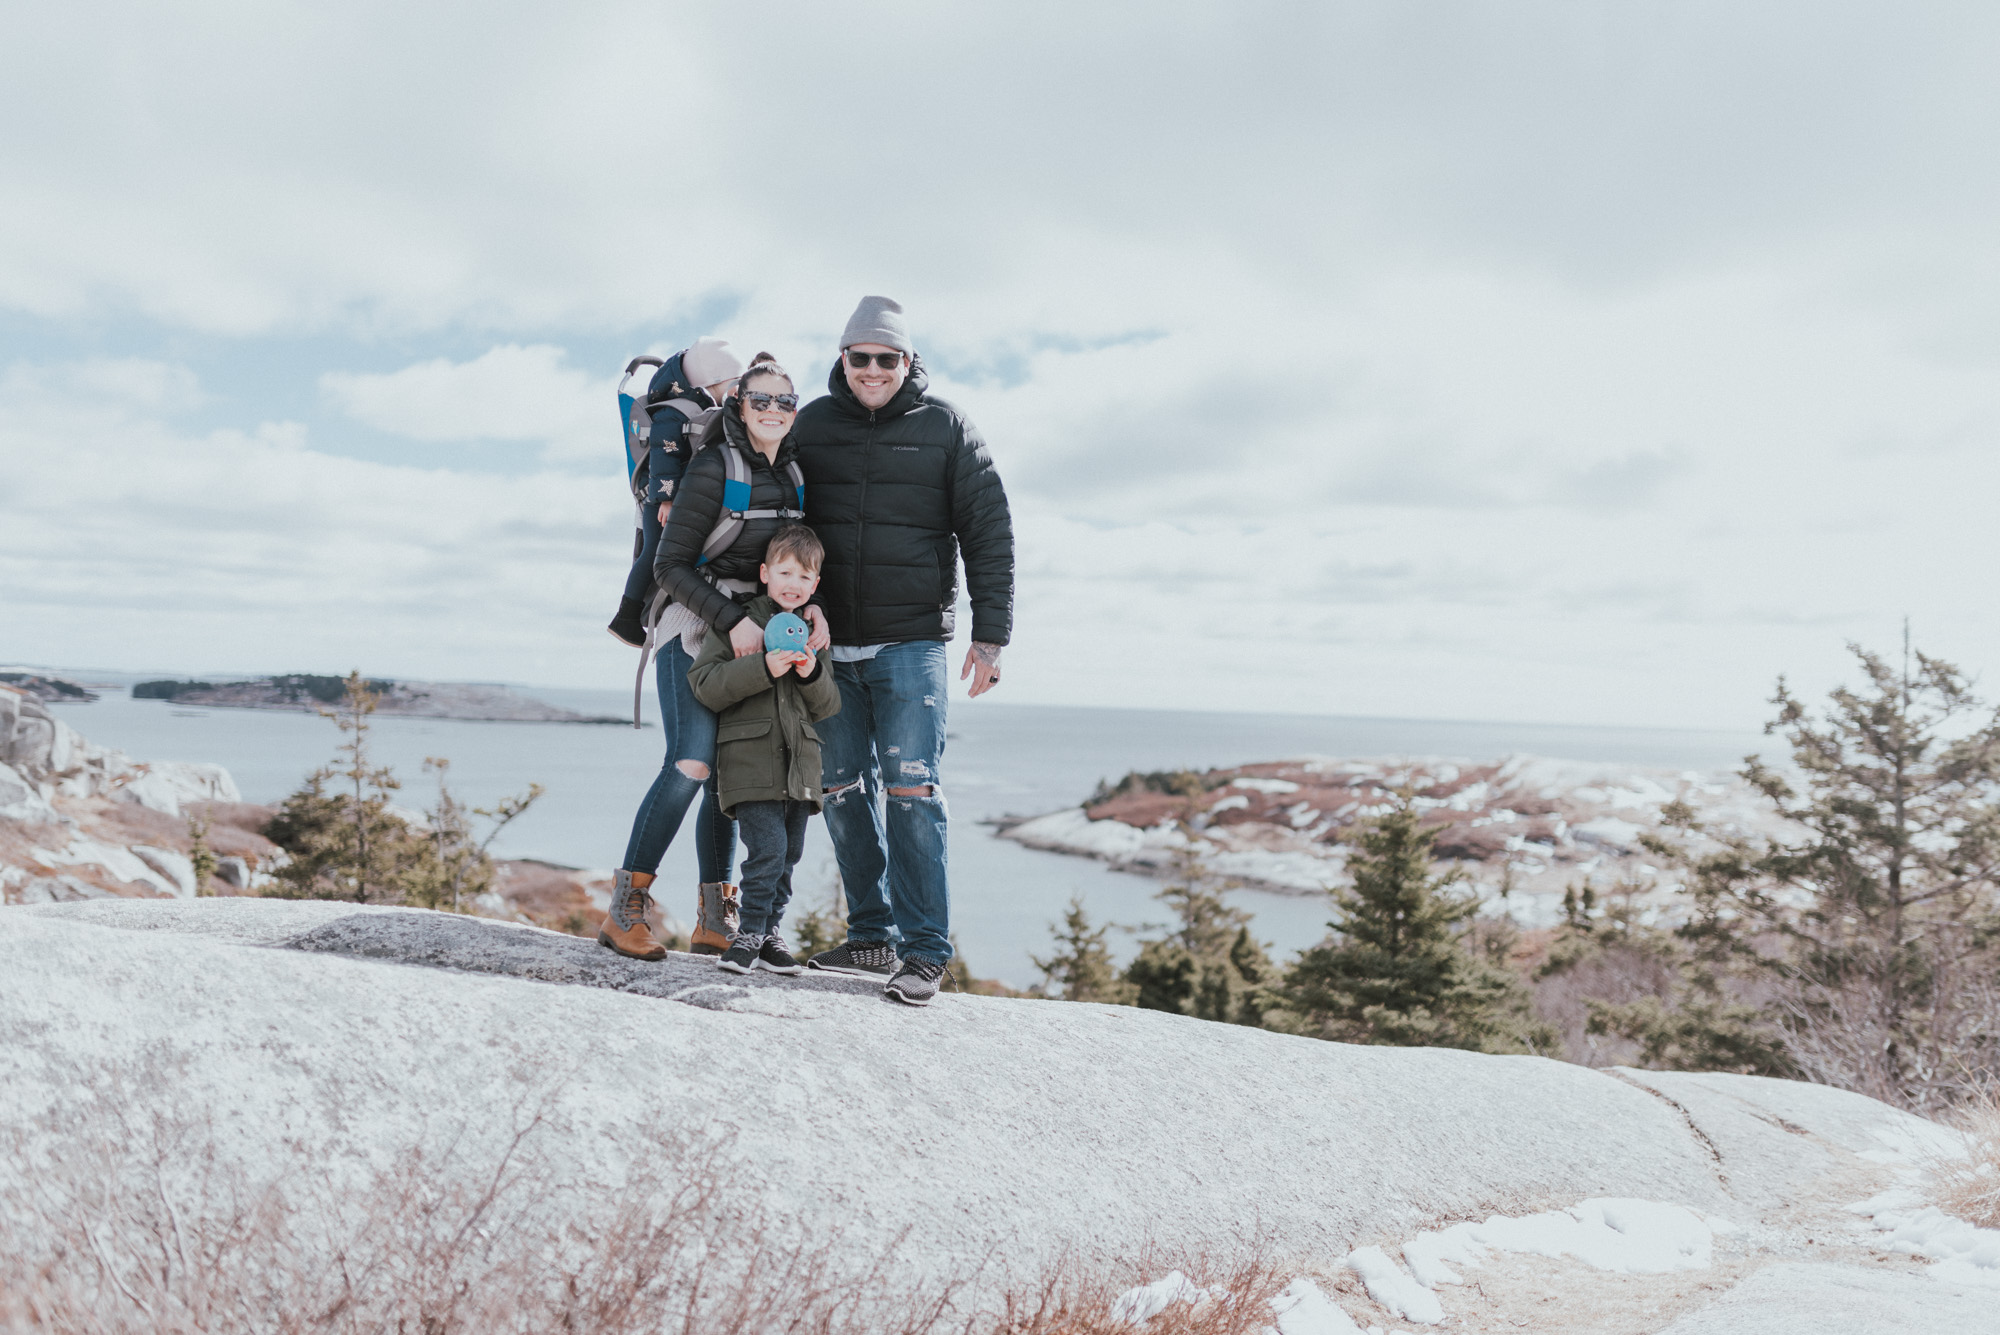 The Wild Decoelis | Oceanstone Resort | March Break with the whole family | Hiking Polly Cove Rock